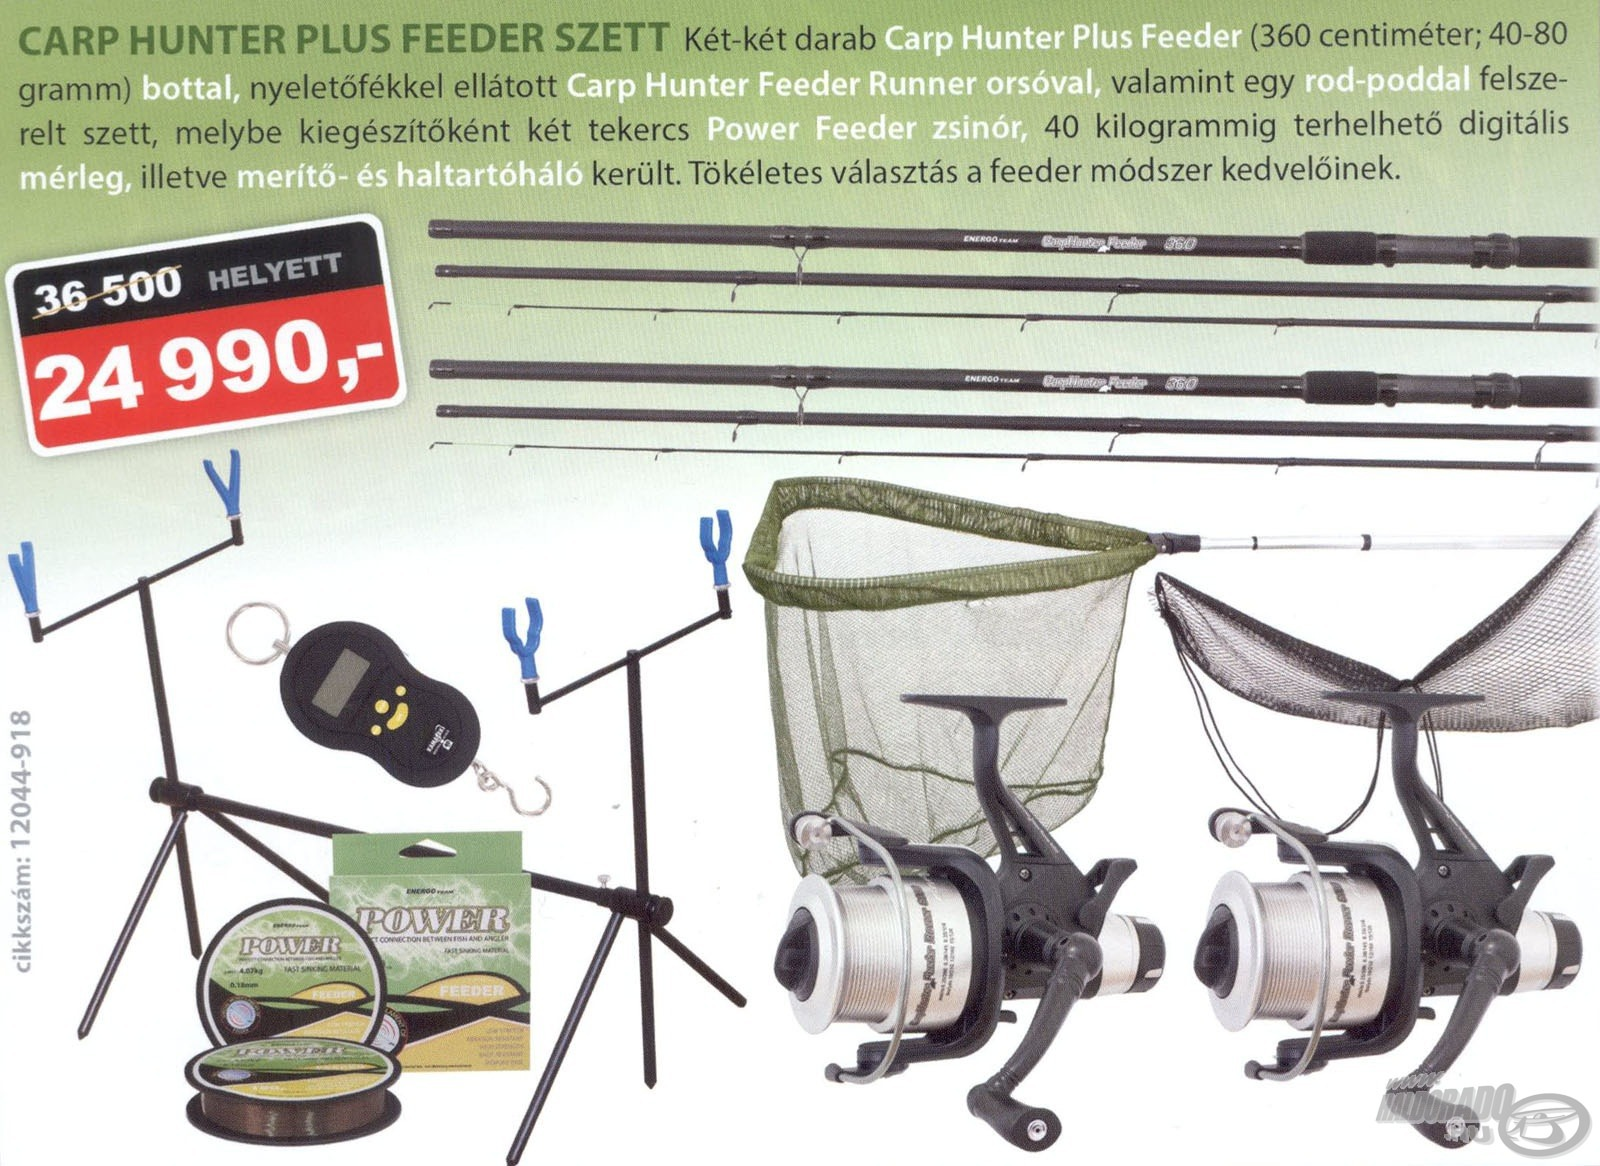 ENERGOTEAM Carp Hunter Plus Feeder szett 36500 helyett 24990Ft